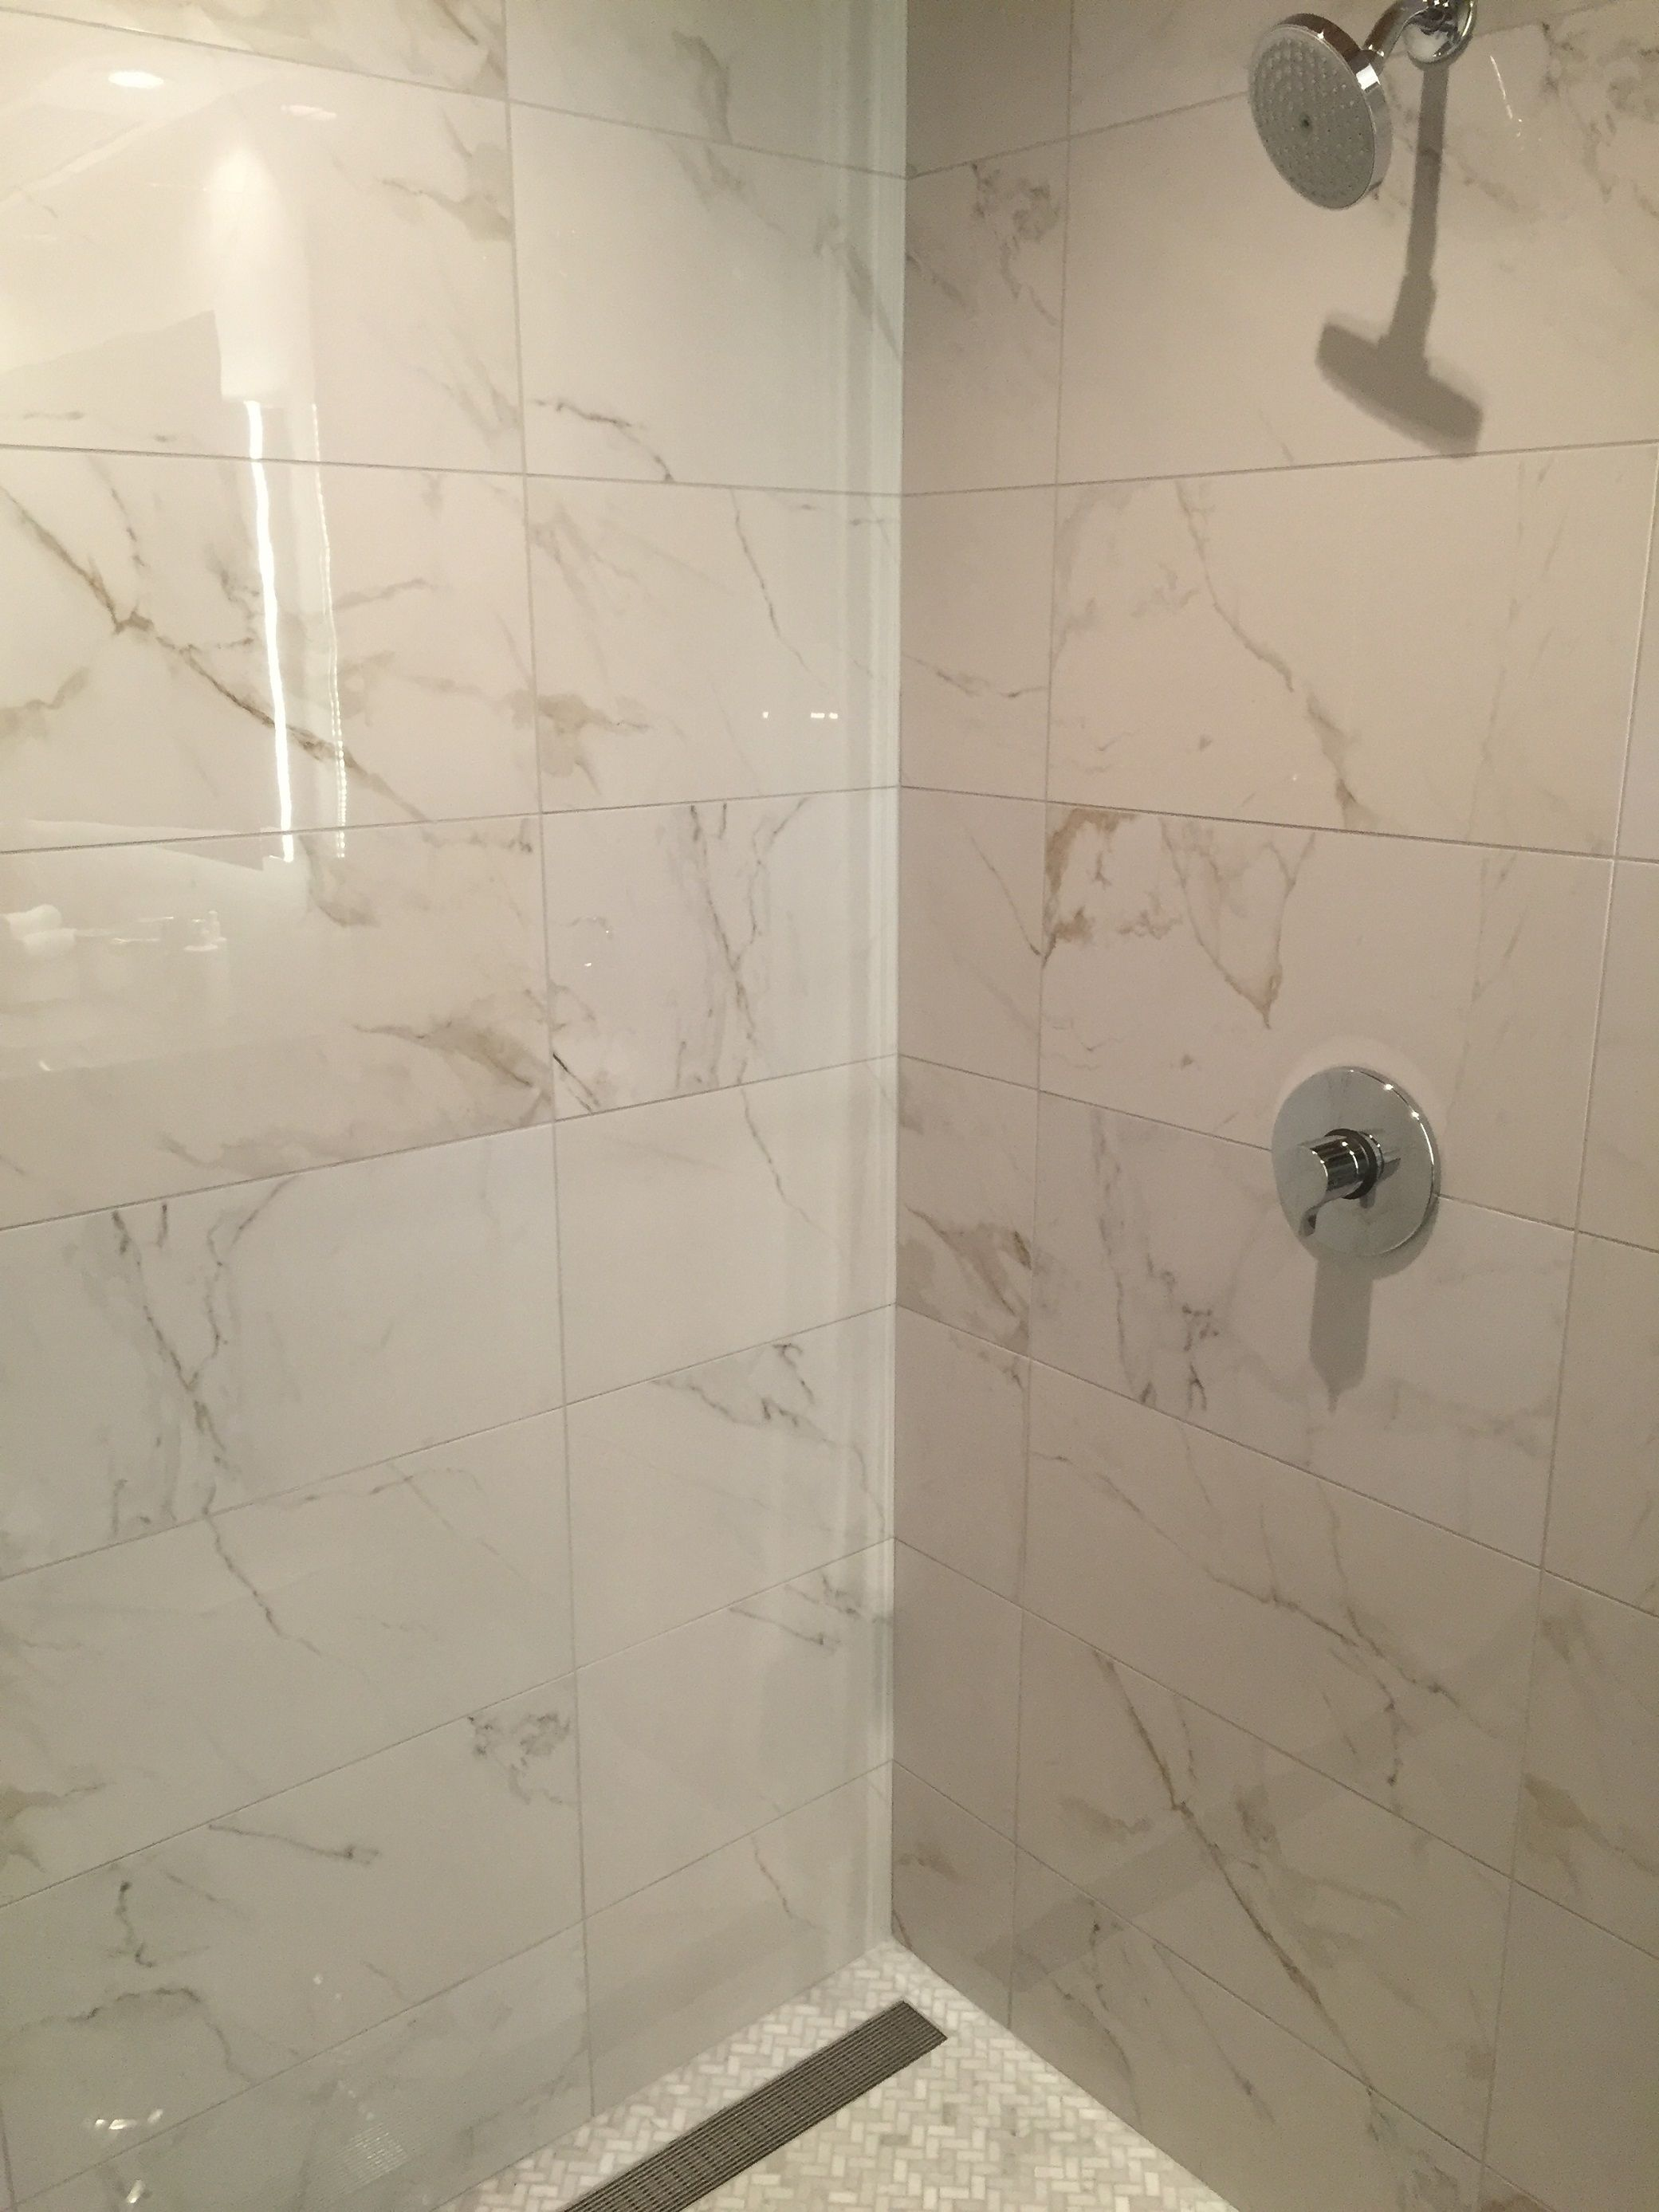 porcelain floor tile - looks like marble, but without the